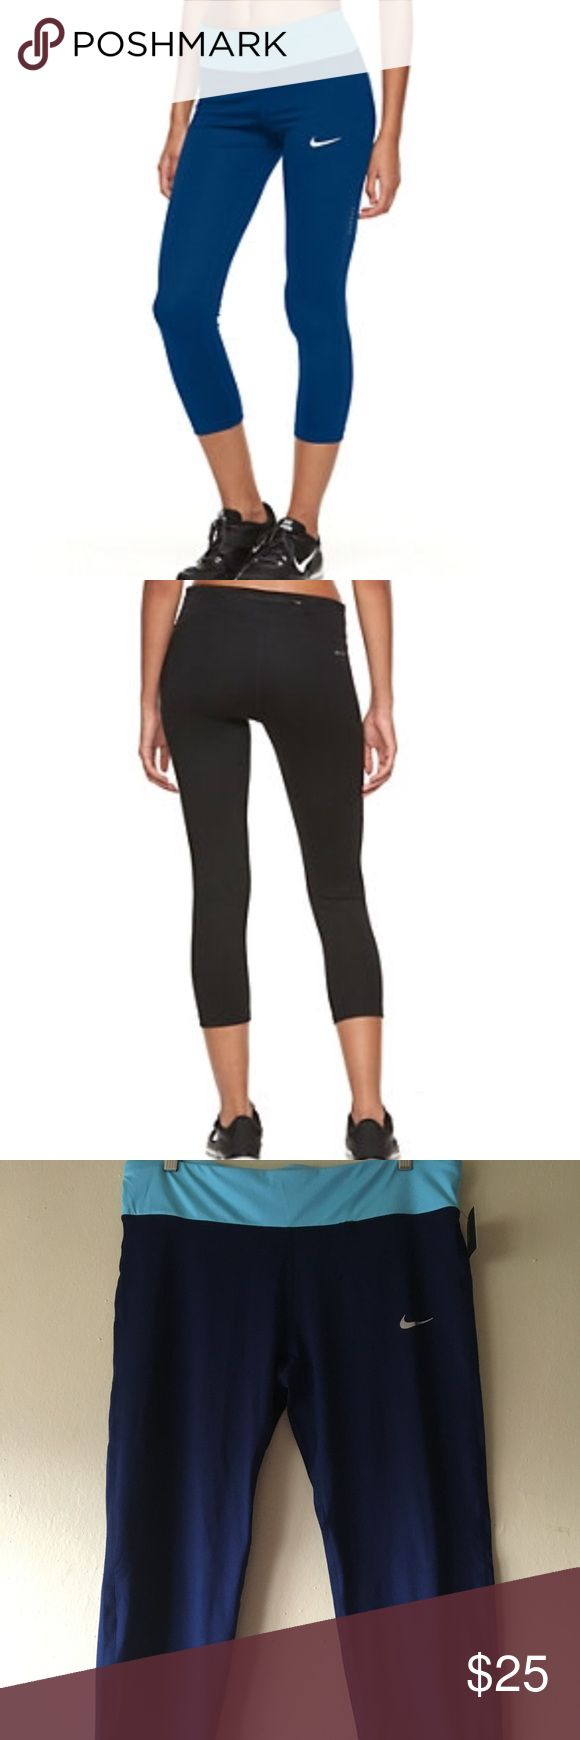 Nike Power Essentials Capri NWT. Made of Nike power fabric the provide a range of stretch and support. Dri-Fit Fabric. Capri length. Pull on style with a drawstring inside, as well as a pocket on the back that contains a waterproof material. Can fit an iPhone 6s without case. Nike Pants Capris